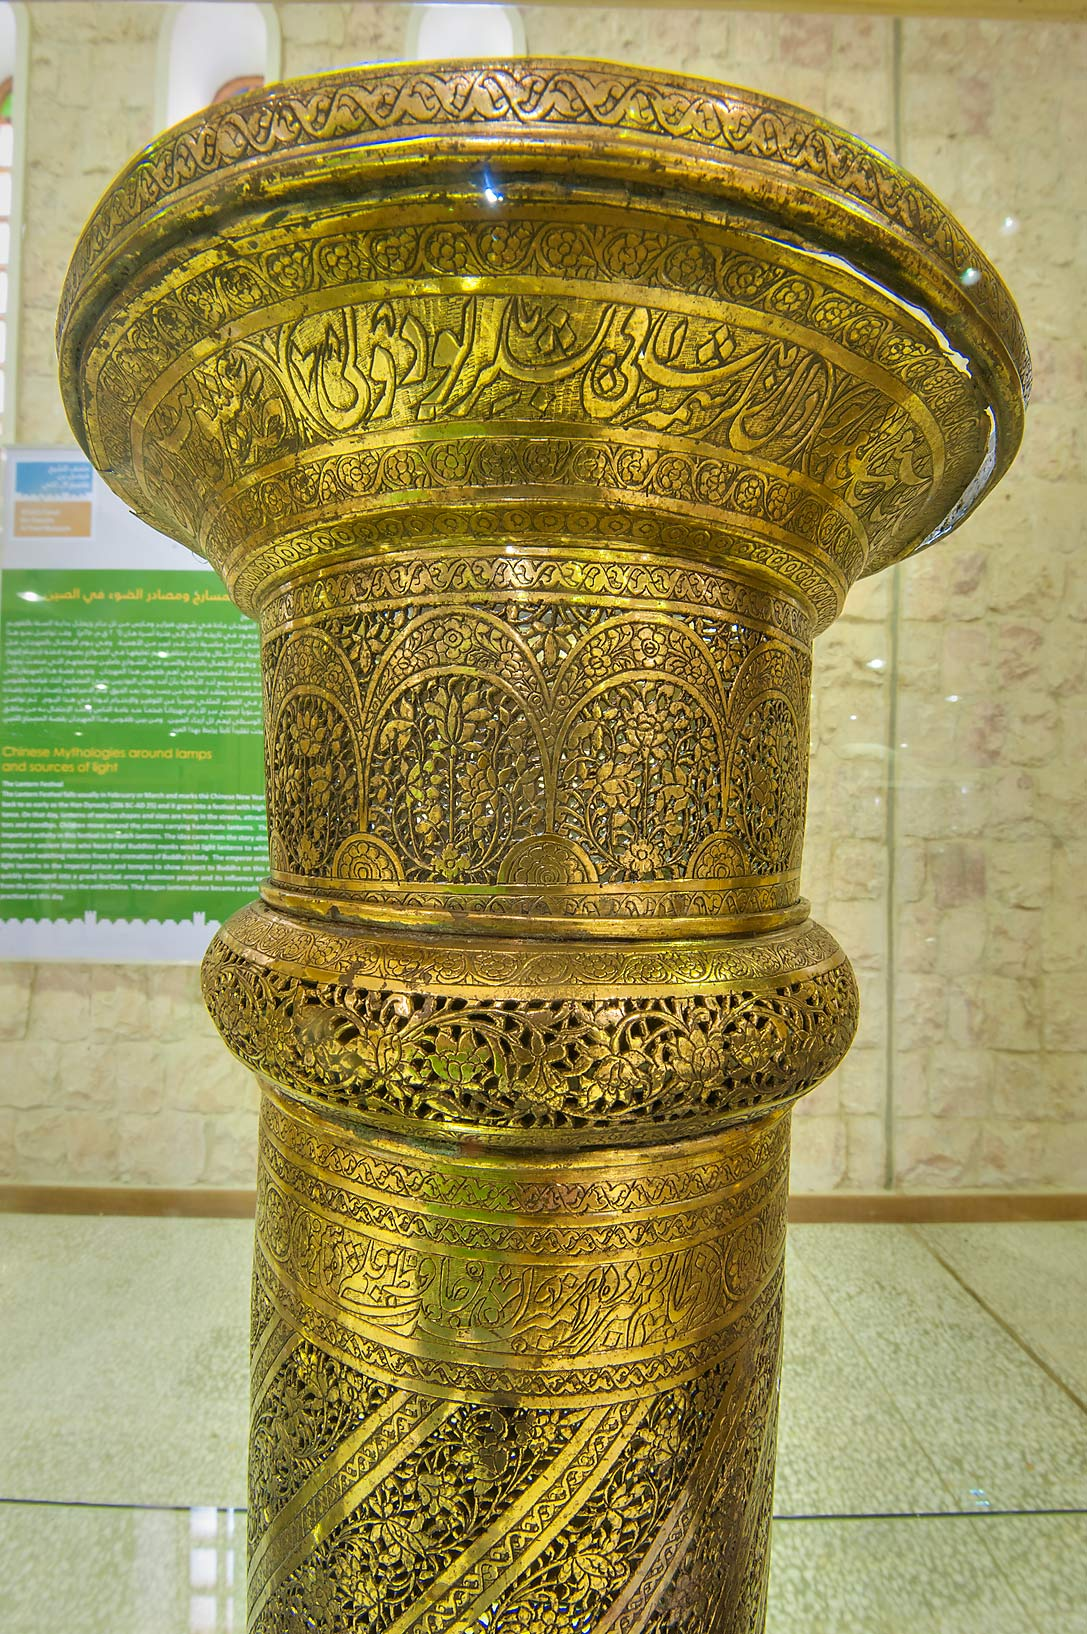 Decorated brass column in Sheikh Faisal Bin...Museum near Al-Shahaniya. Doha, Qatar